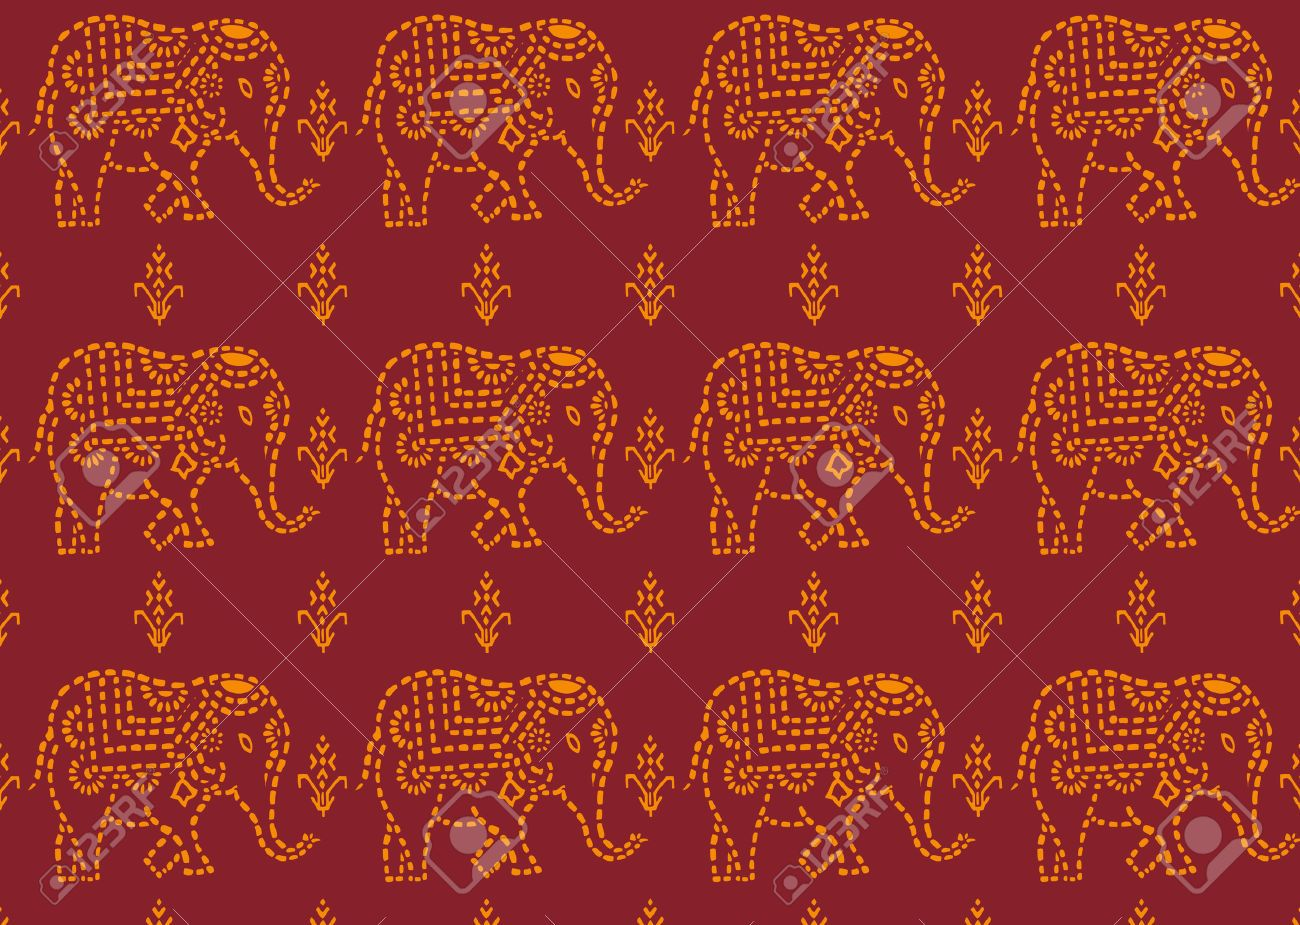 Seamless Red And Yellow Indian Elephant Wallpaper Royalty ...